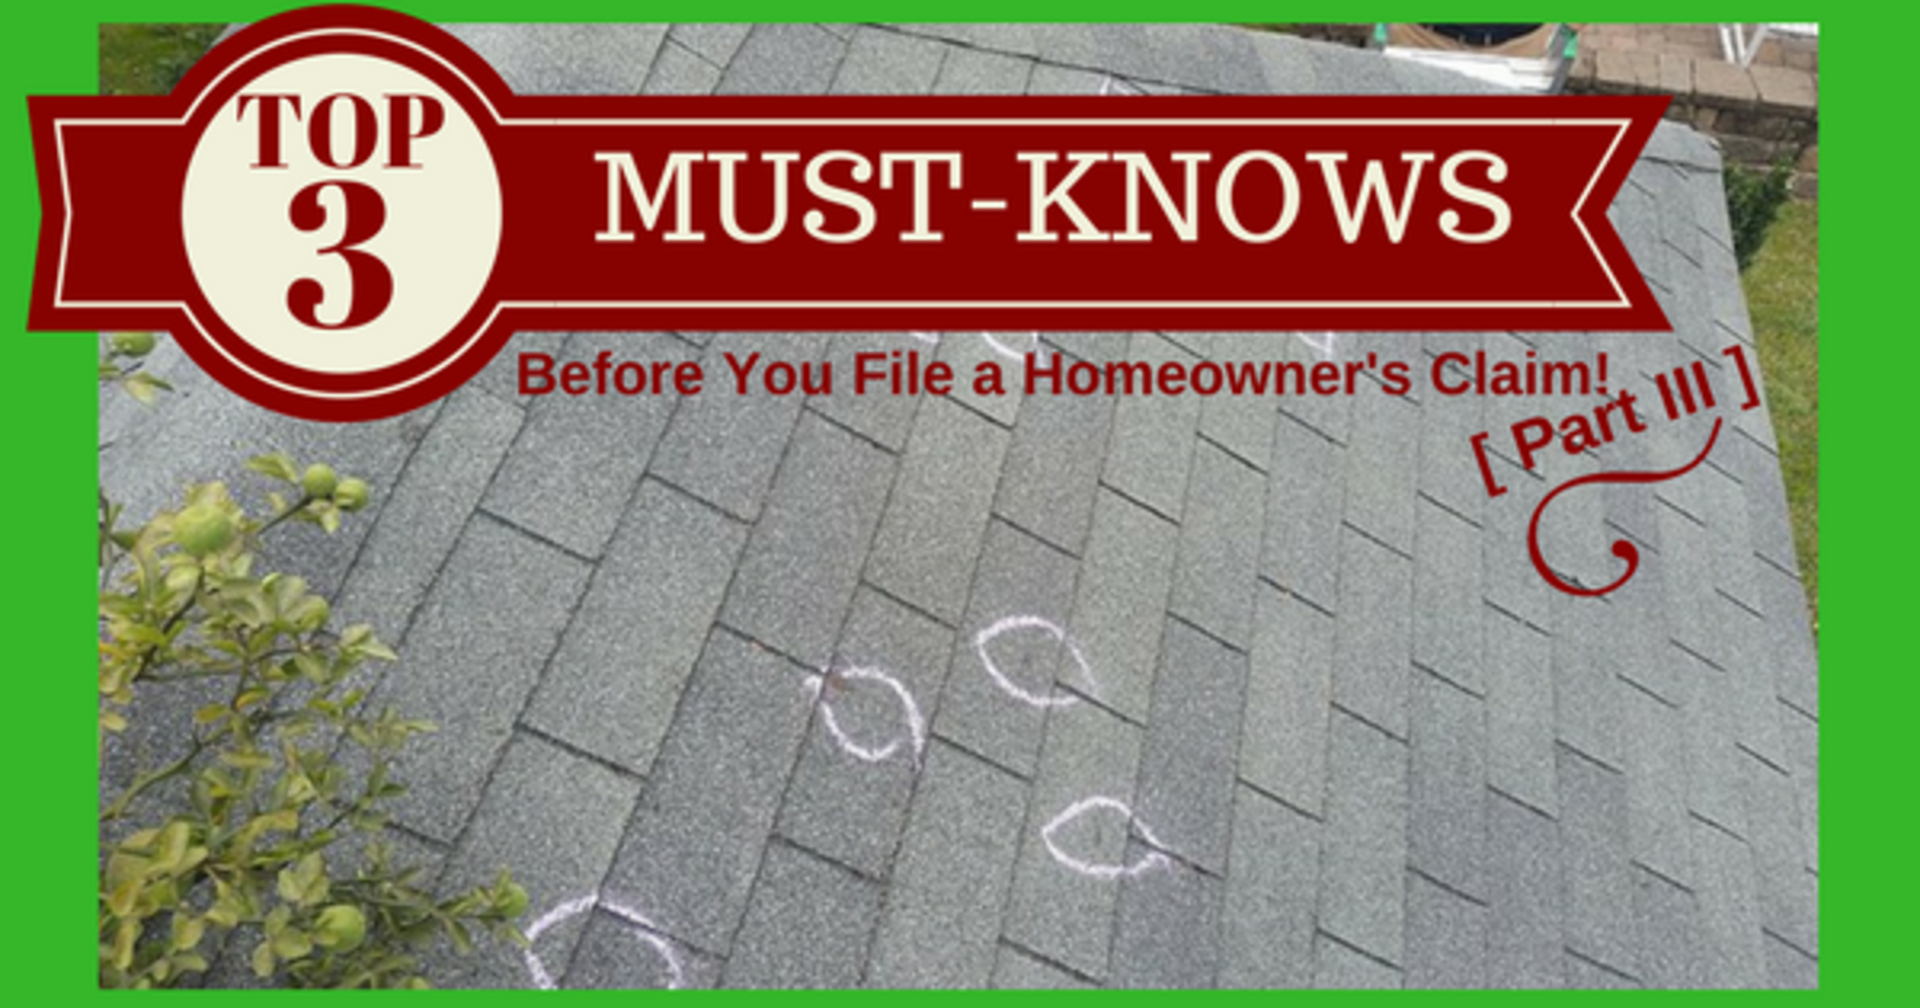 TOP 3 MUST-KNOWS Before You File and Homeowners Claim Part III